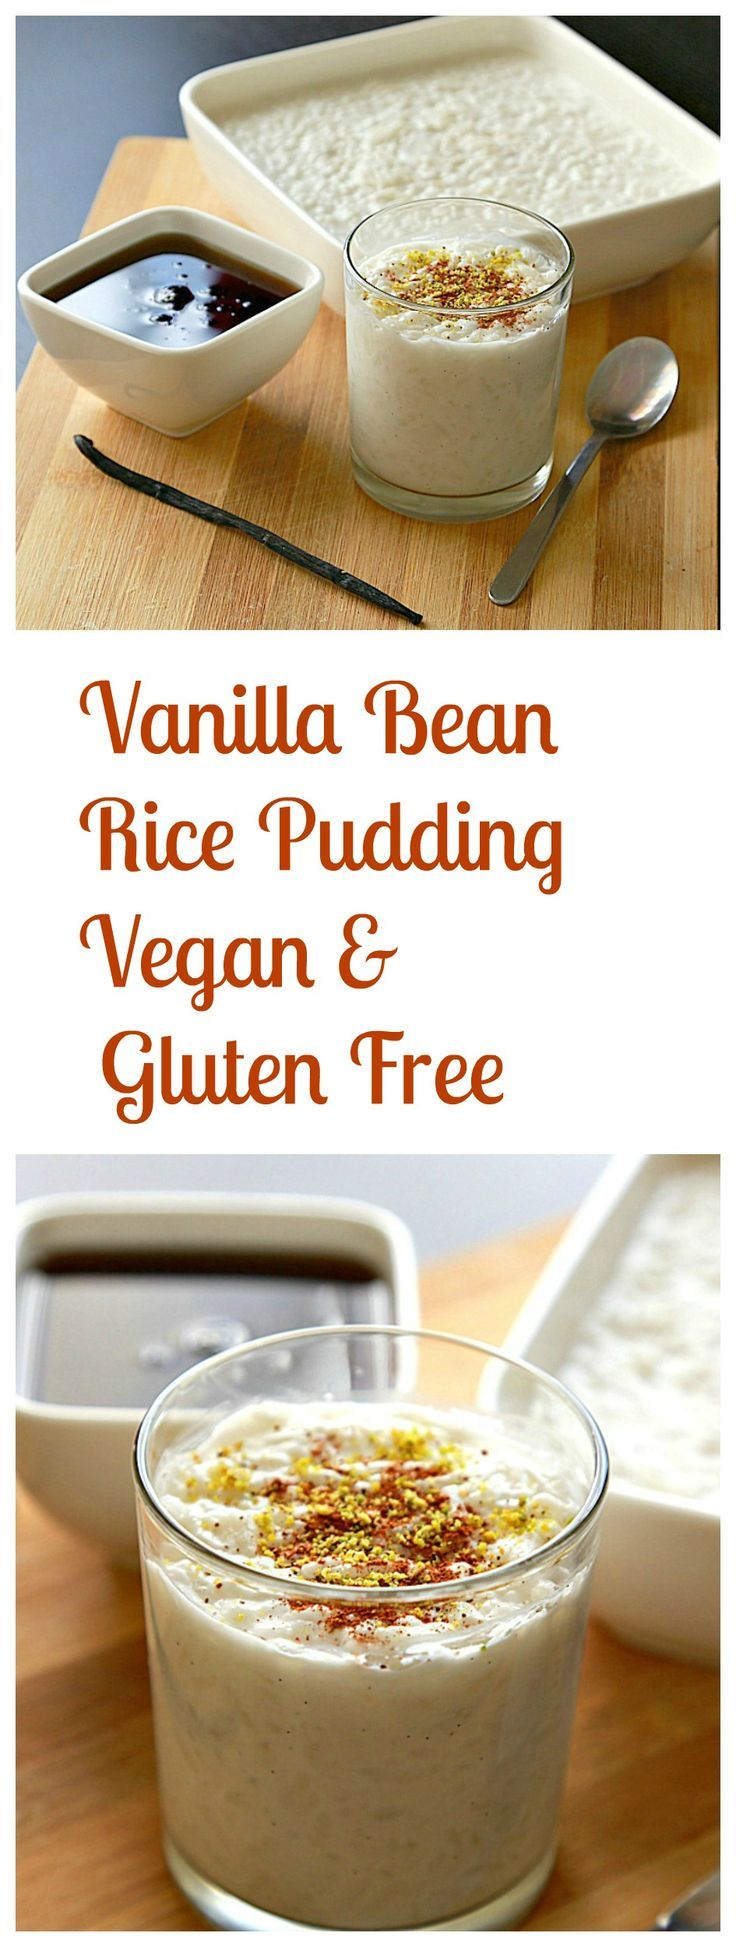 Vanilla Bean Rice Pudding This smooth silky creamy rice pudding is flavored with vanilla bean. It's very healthy, vegan, refined sugar free, and gluten free too!